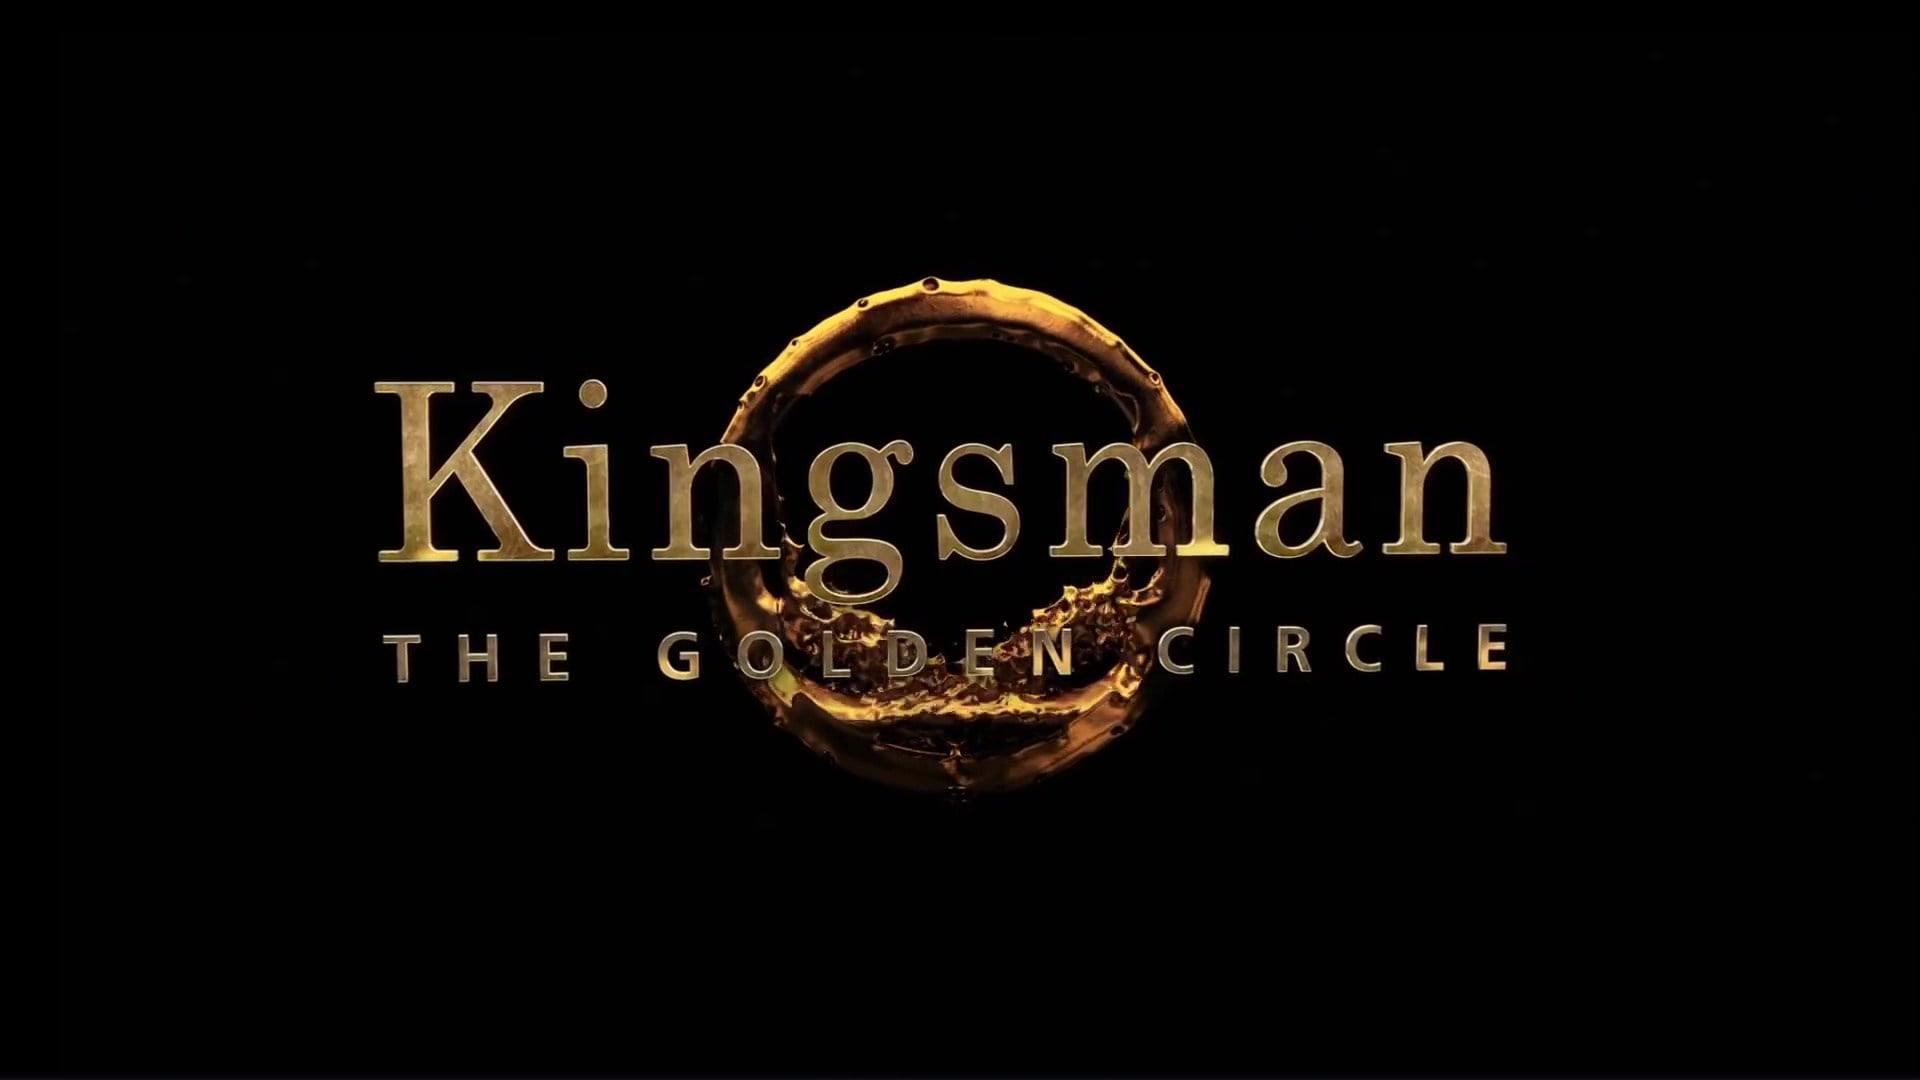 Kingsman: The Overhyped Circle